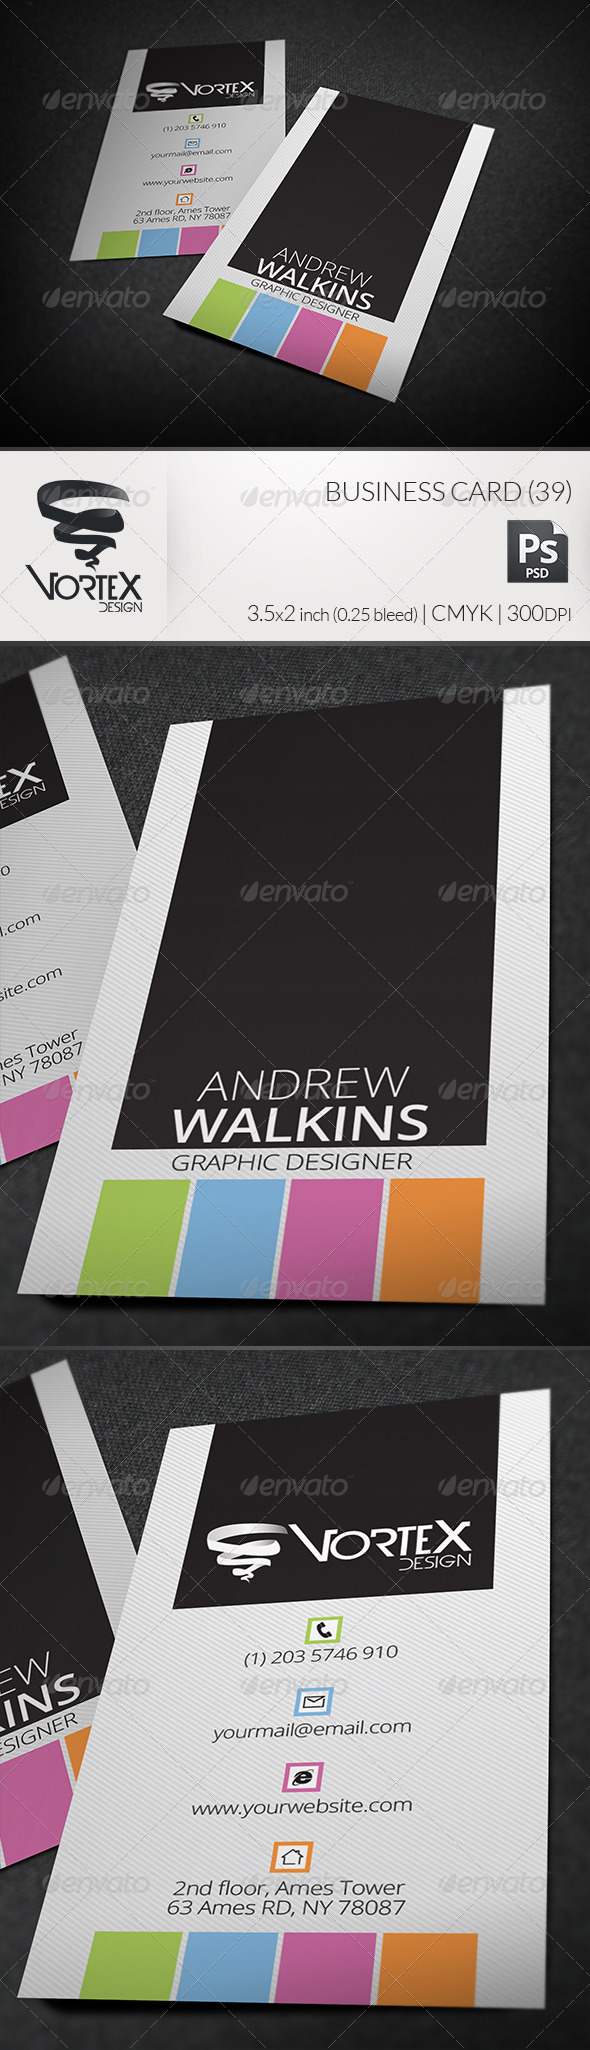 GraphicRiver Business Card 39 5906563